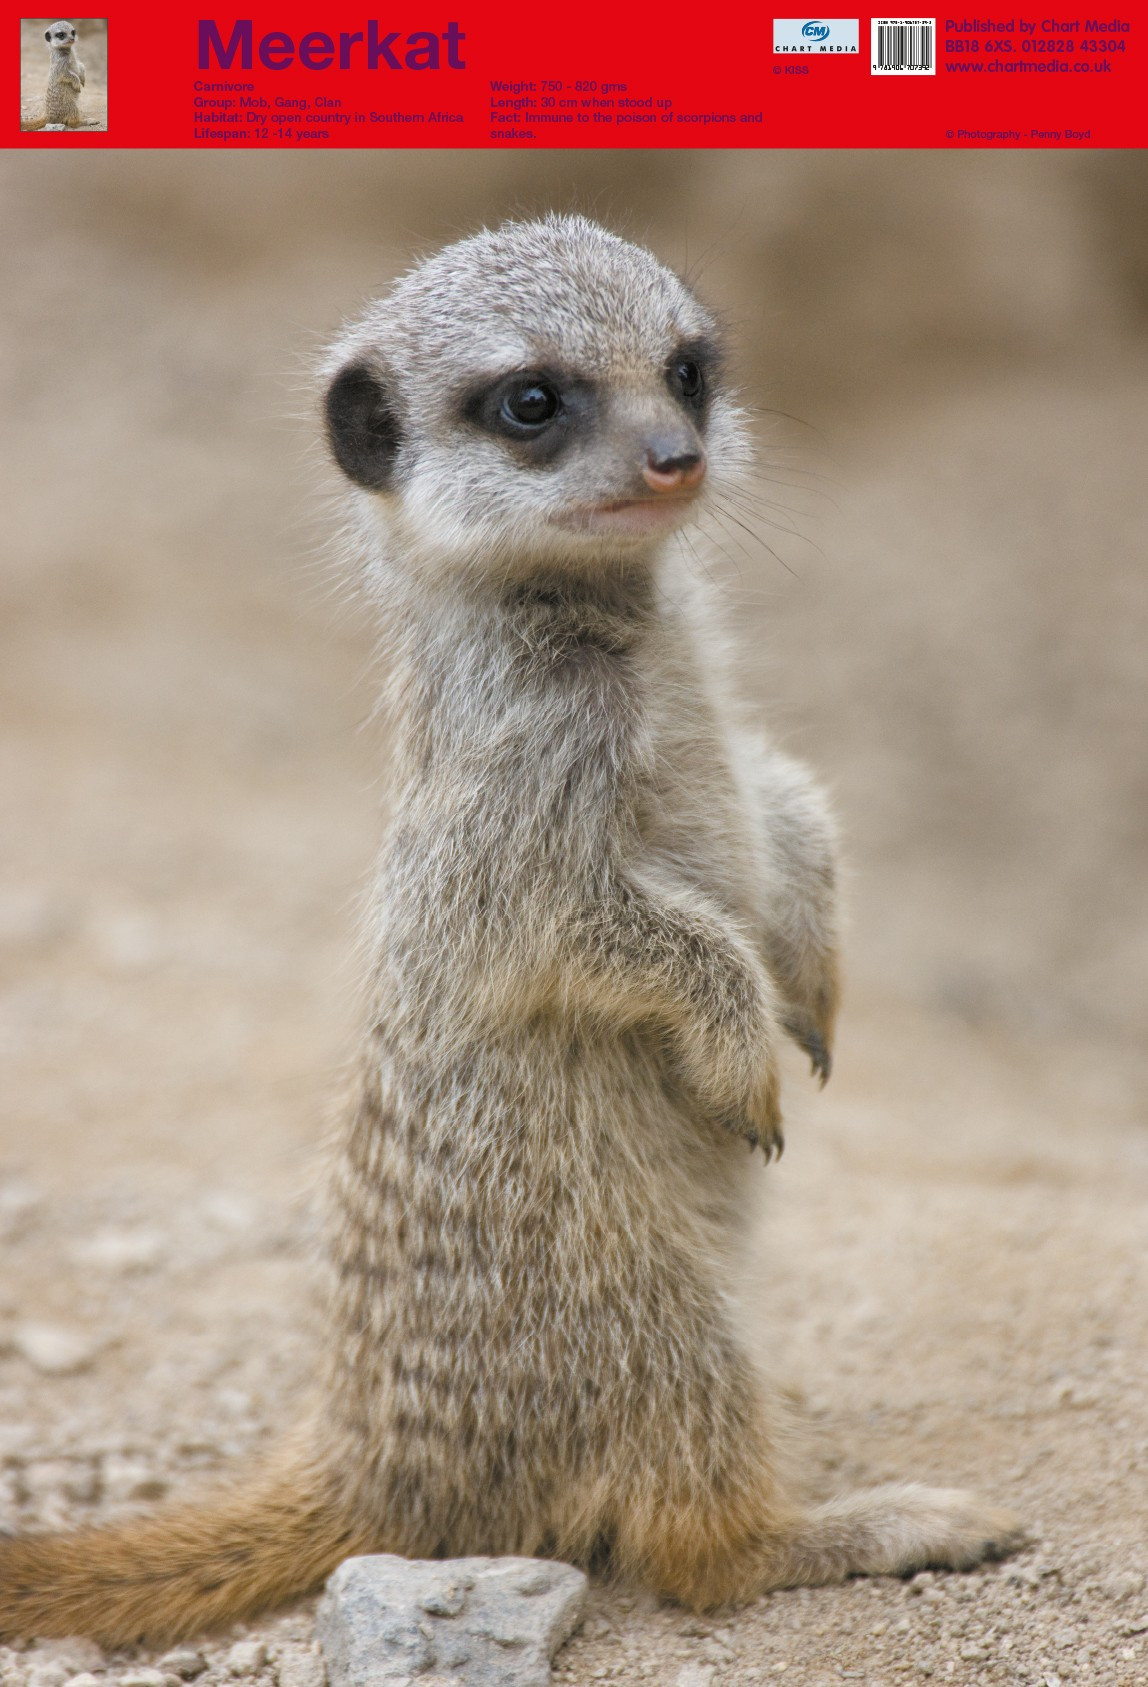 Posters Uk Cute Meerkat Animal Posters Wholesale Wall Posters Free Delivery